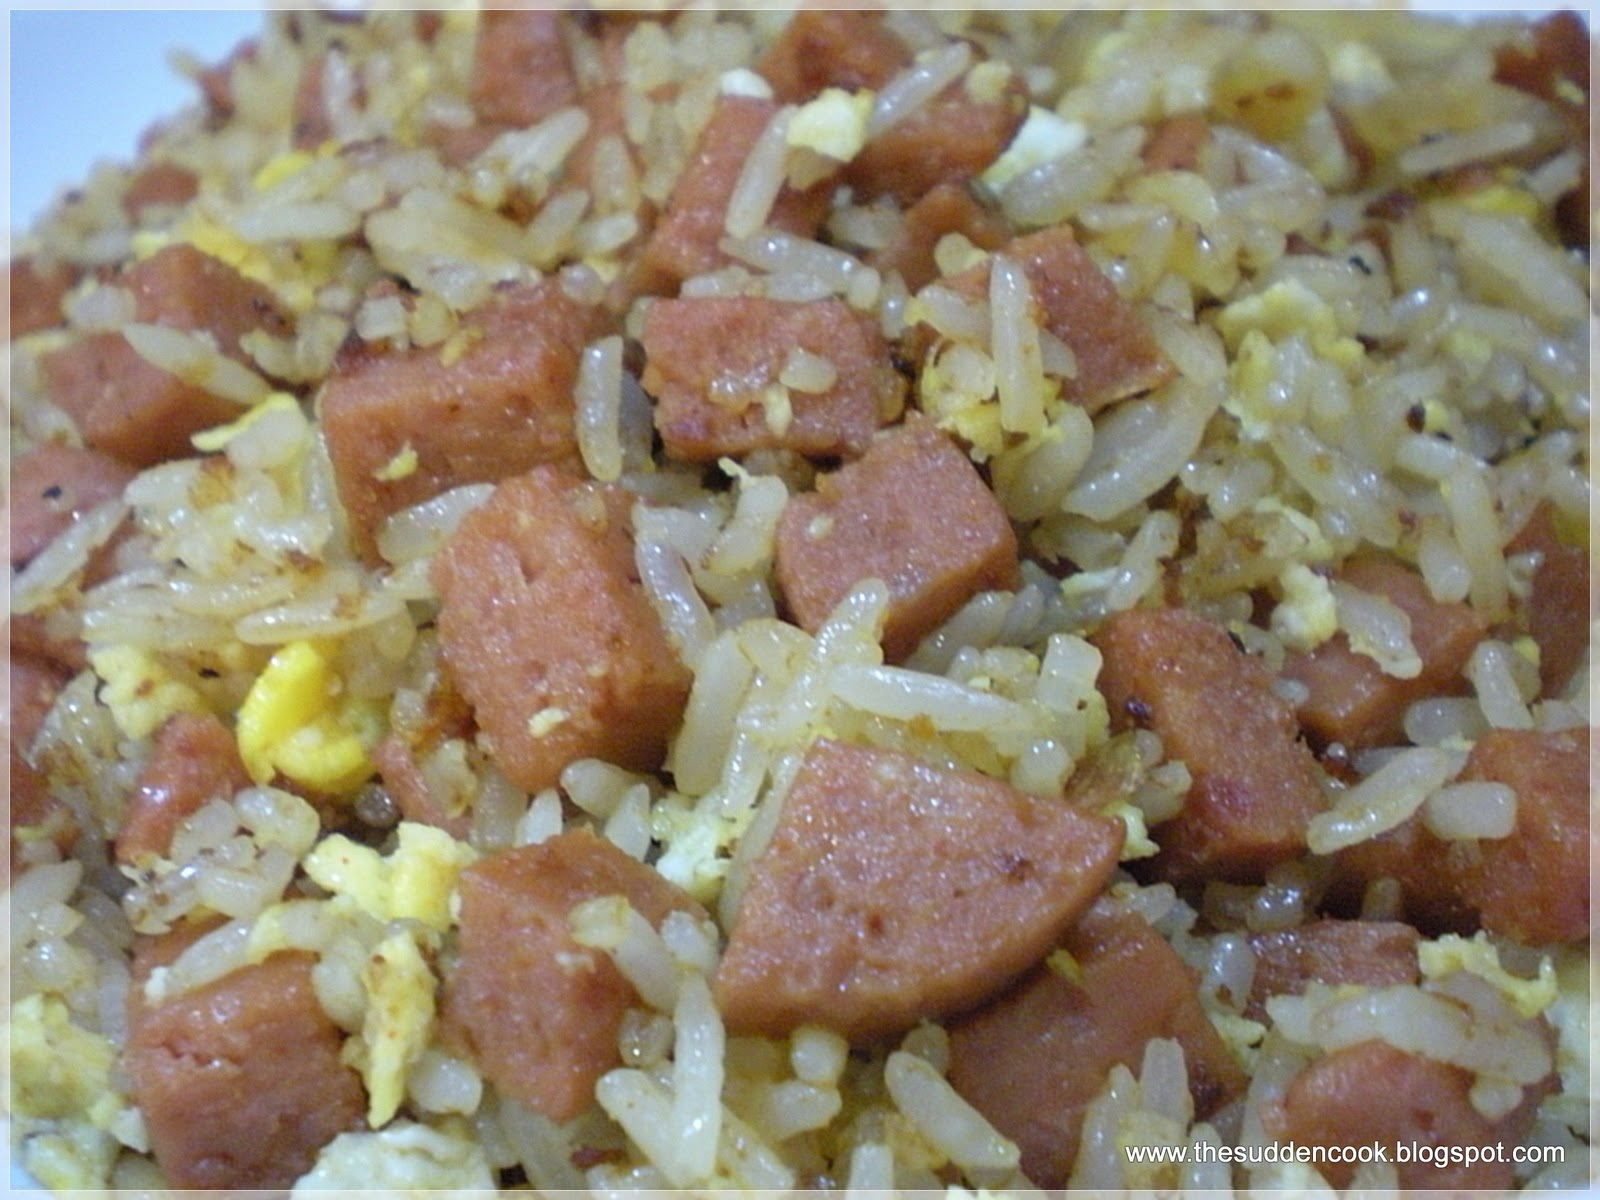 The sudden cook a malaysian blog focusing on simple and easy recipes luncheon meat fried rice ccuart Choice Image